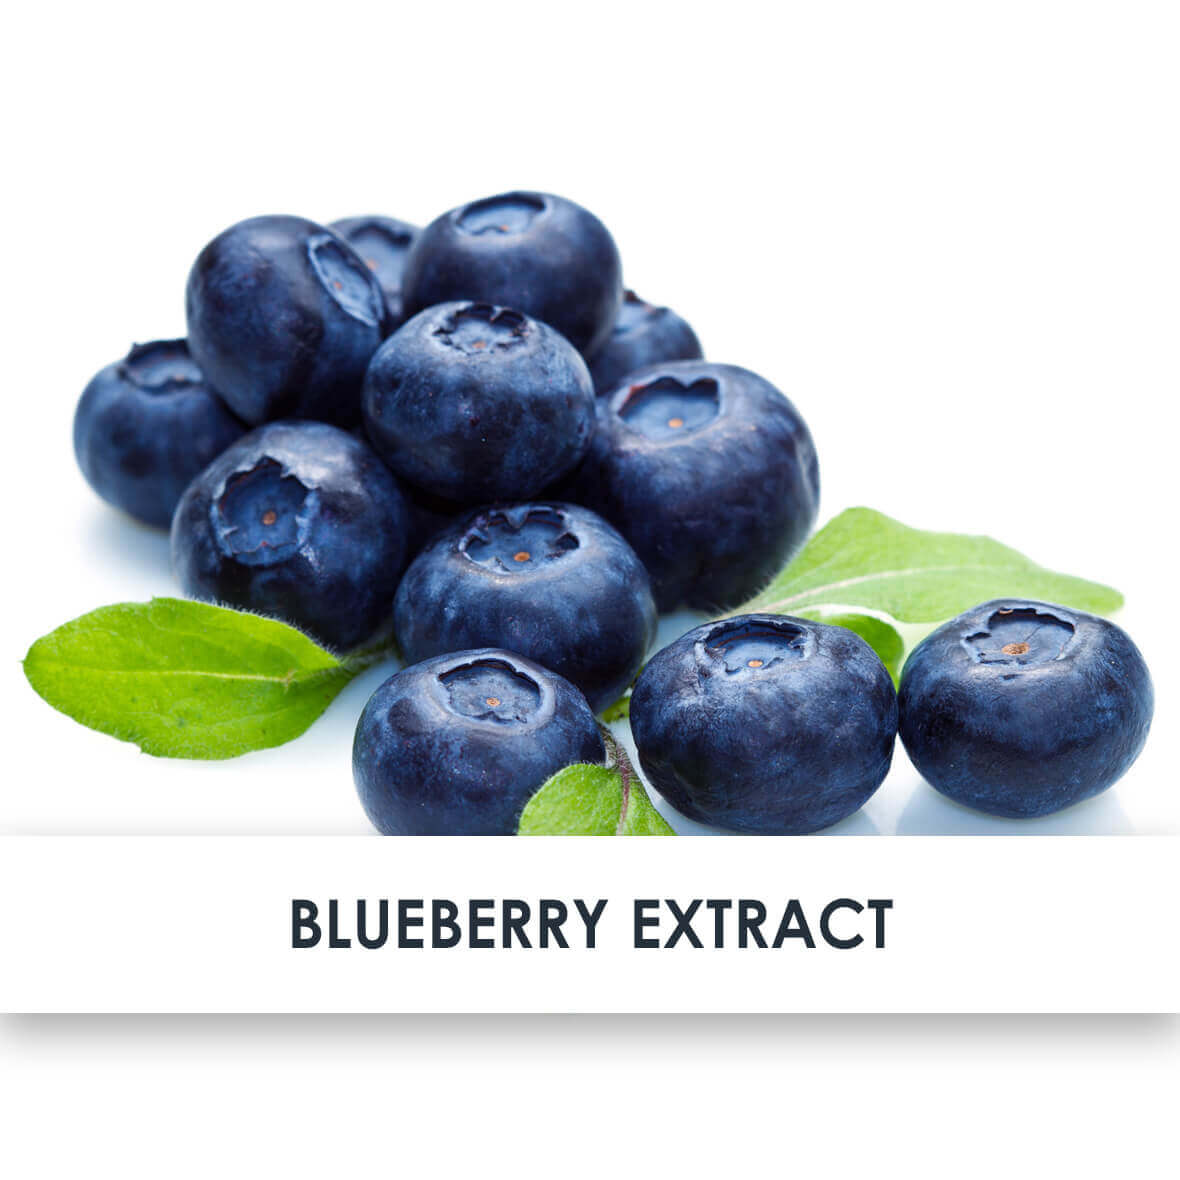 Blueberry Extract Skincare Benefits